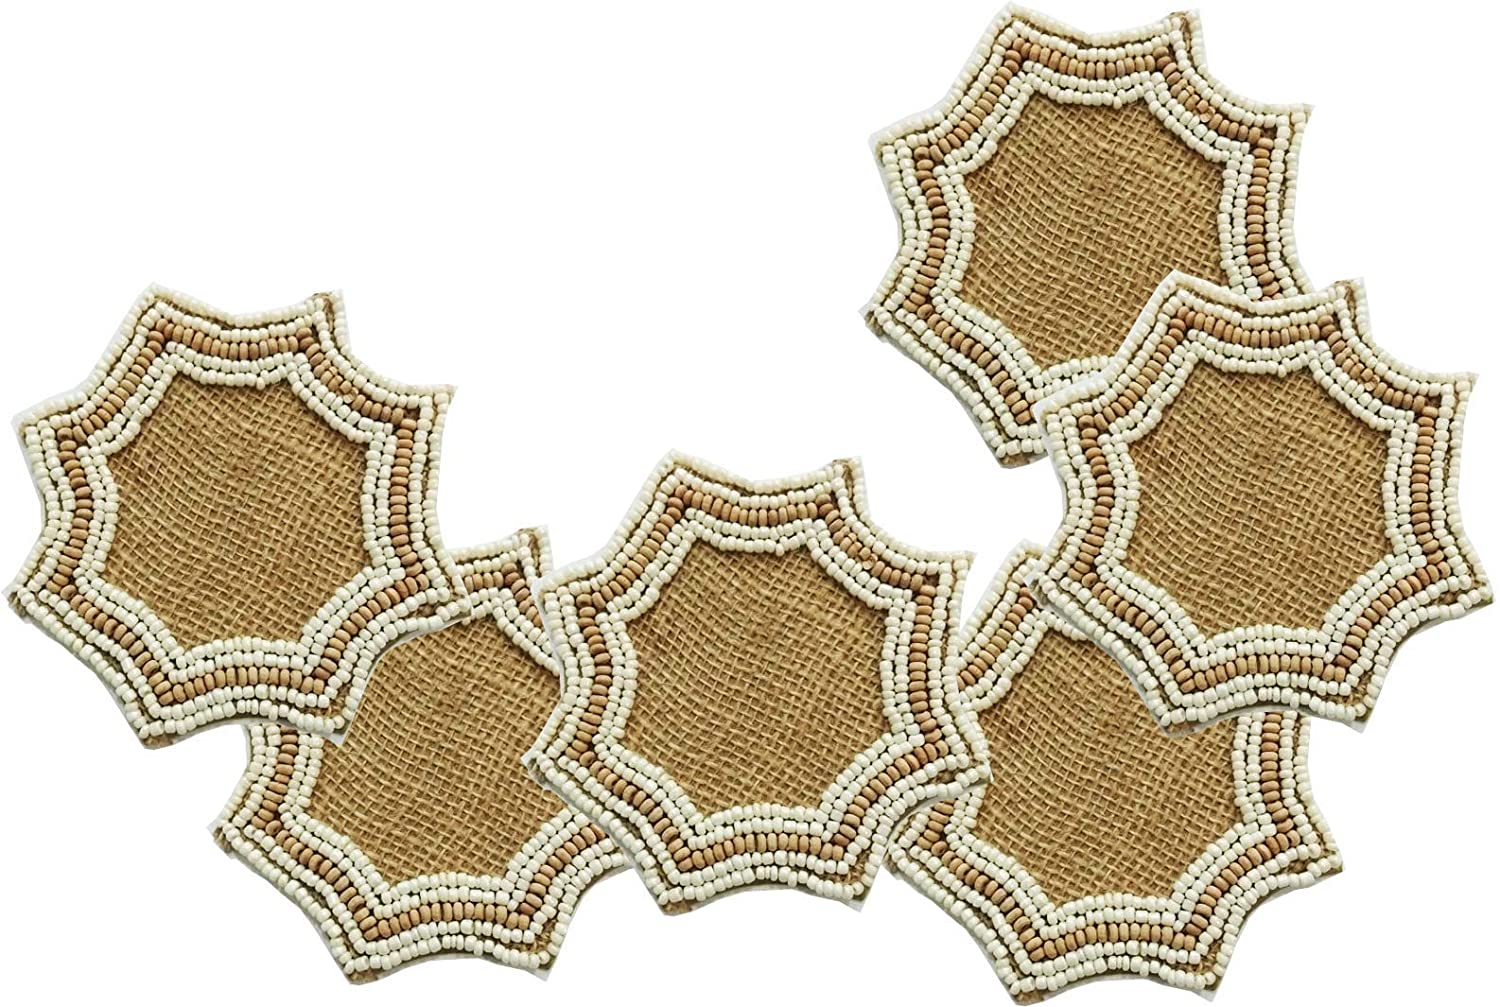 "POPULAR LIFE HOME Athena Jute Beaded Coaster | Hand Beaded Coasters with Satin Back, Decorative Dining Table Coasters, White & Wood, 4 x 4"" (Set of 6)"